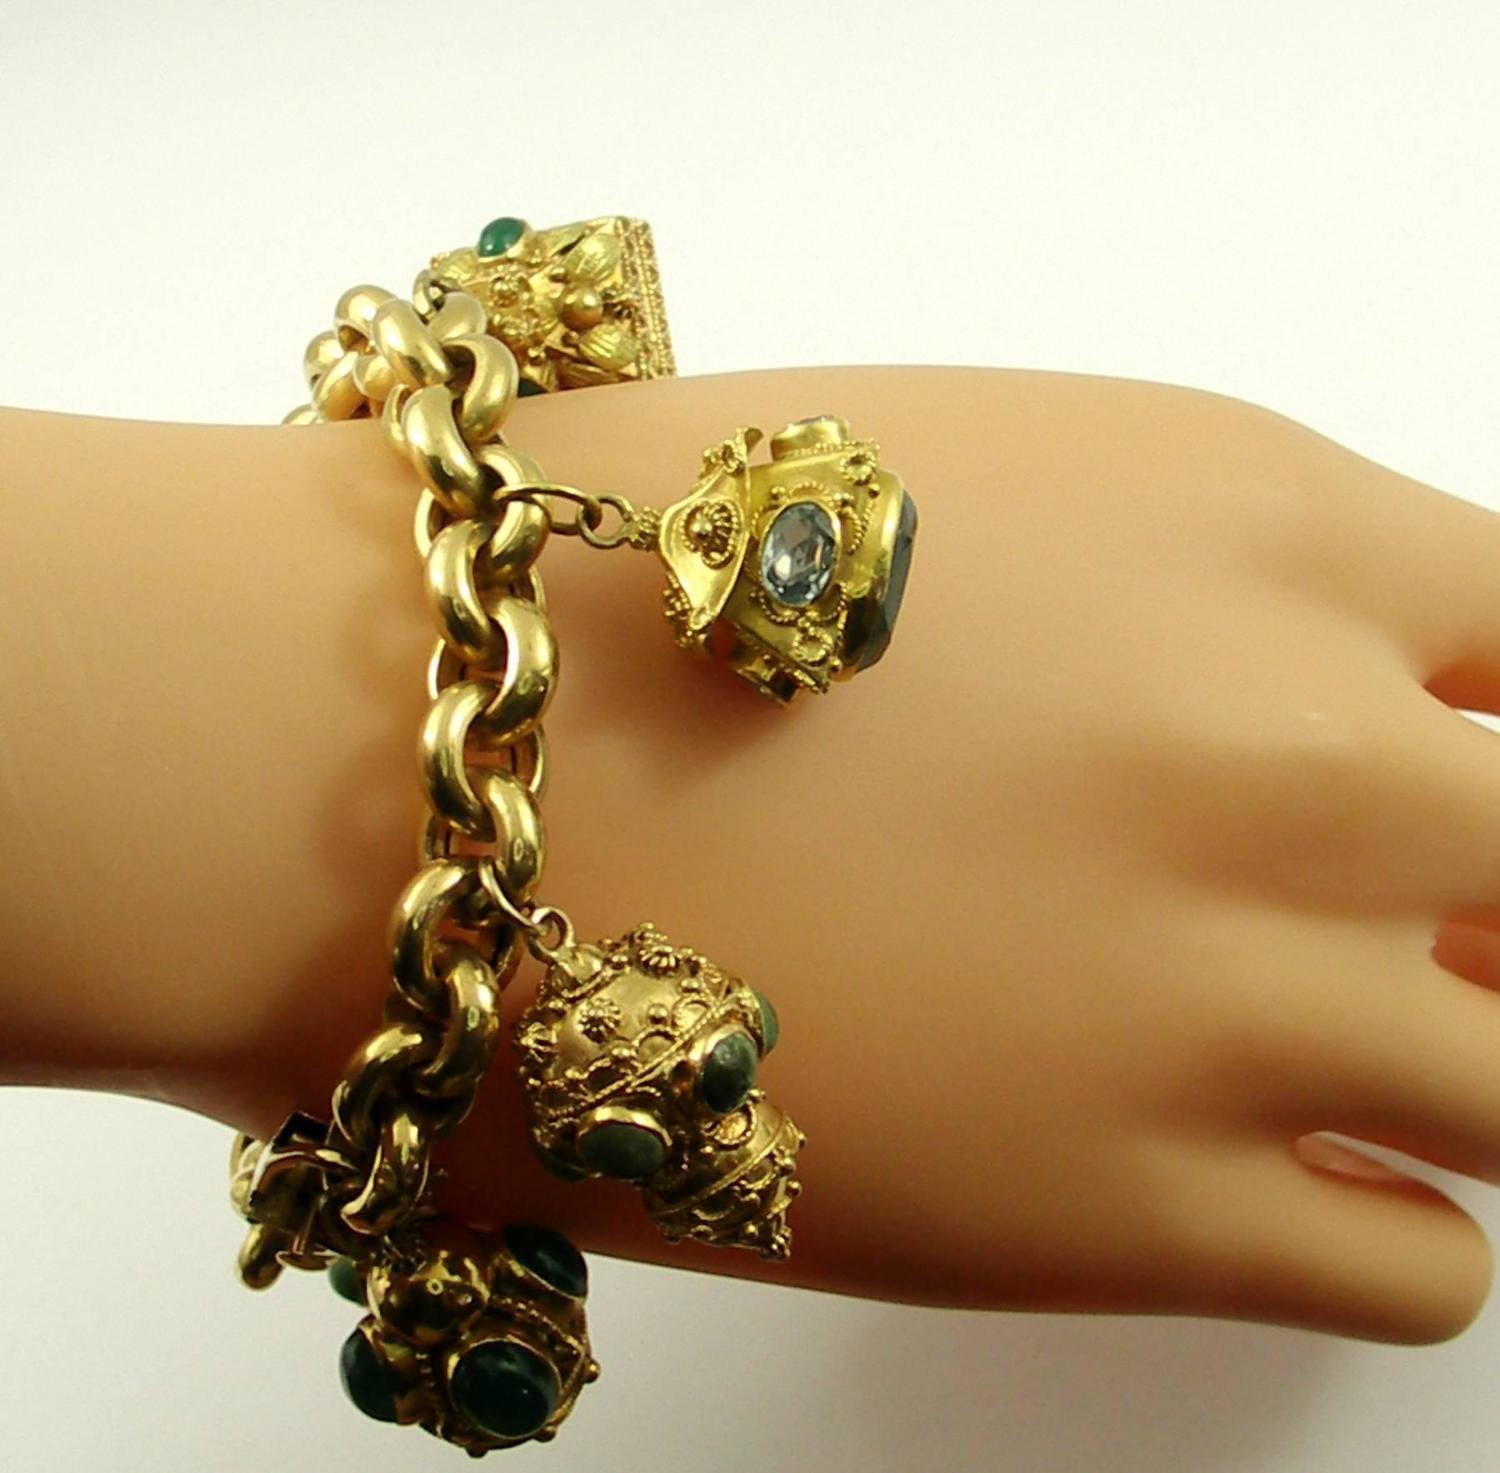 Gold Charm Bracelet Charms: Gold Italian Etruscan Inspired Charm Bracelet For Sale At